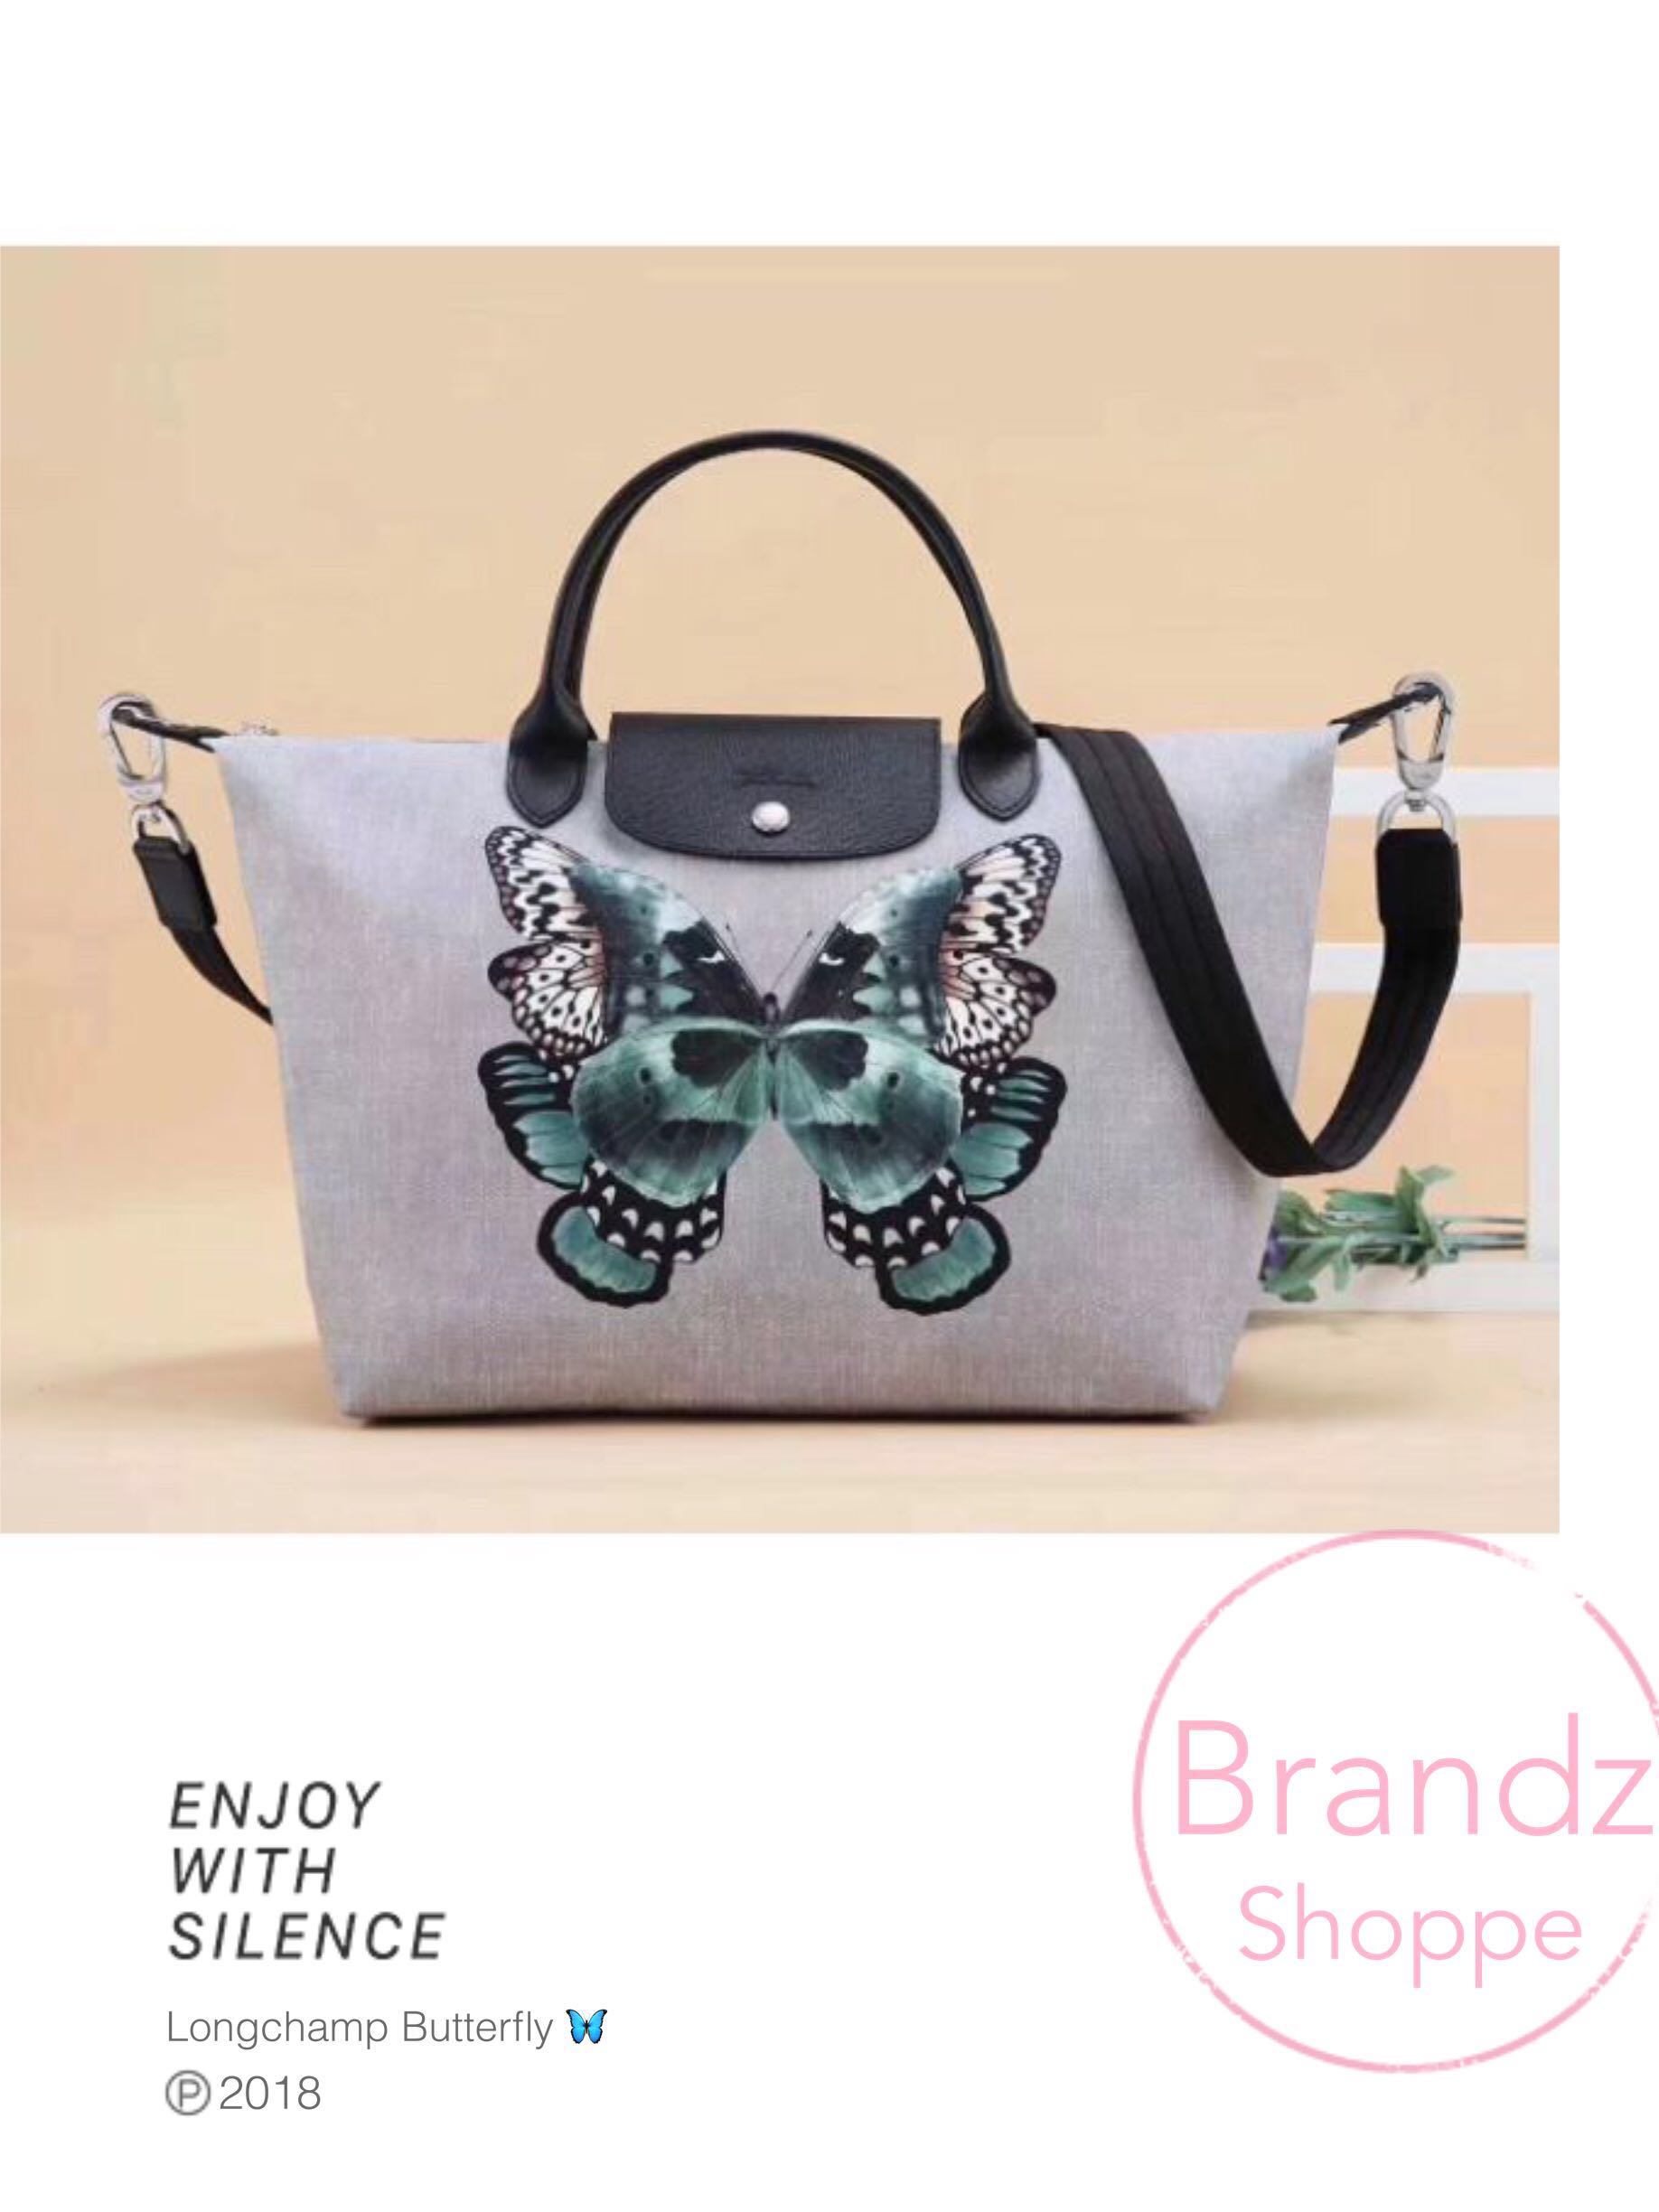 233b8343eae6 🦋SALE! 2018 New Collection   Longchamp Le Pliage Butterfly 🦋 Top ...